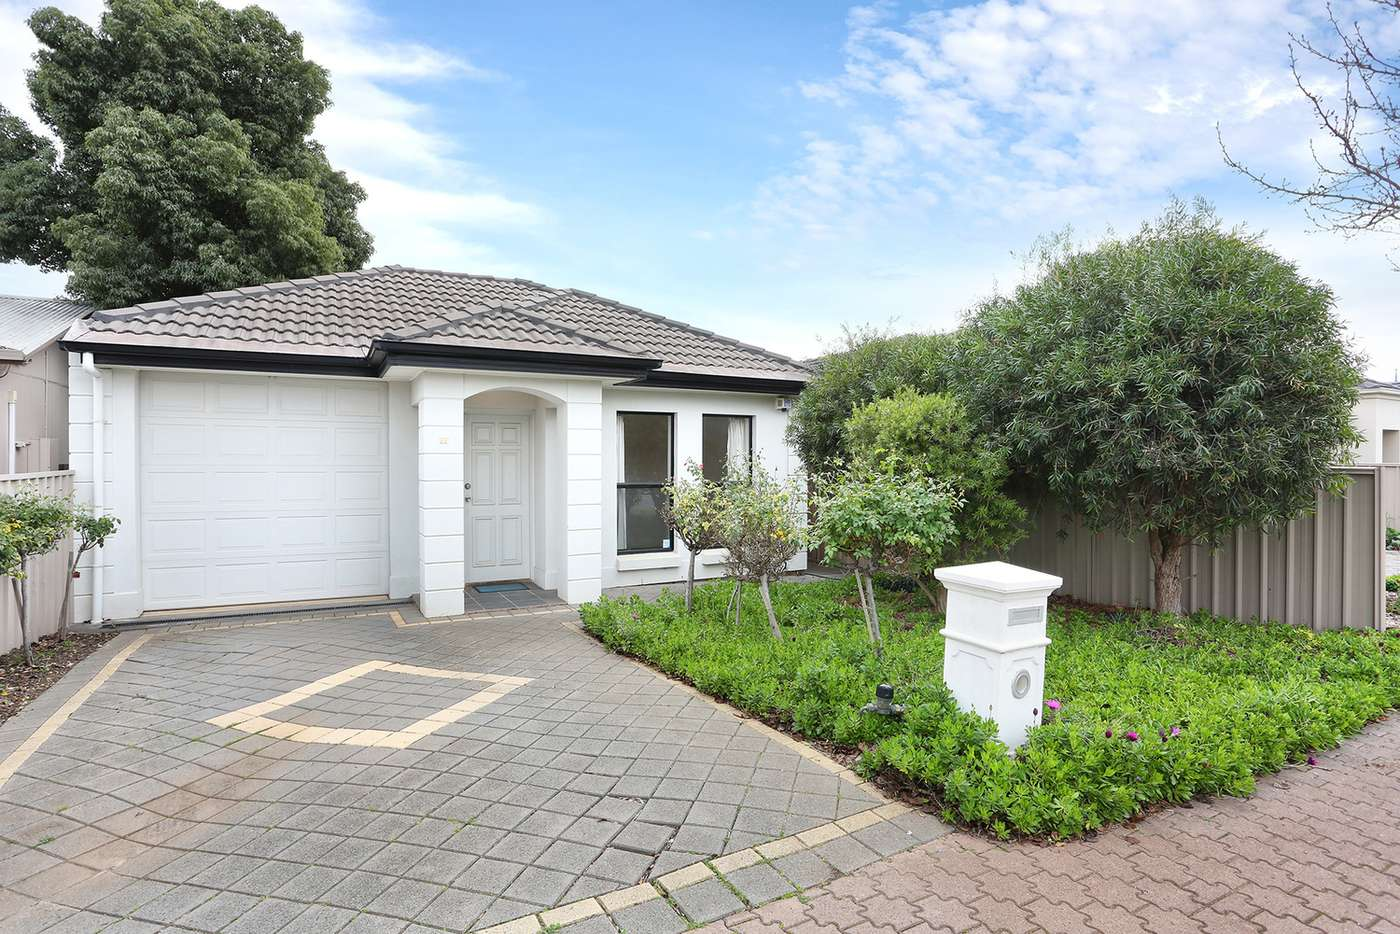 Main view of Homely house listing, 37 Dumfries Avenue, Northfield SA 5085